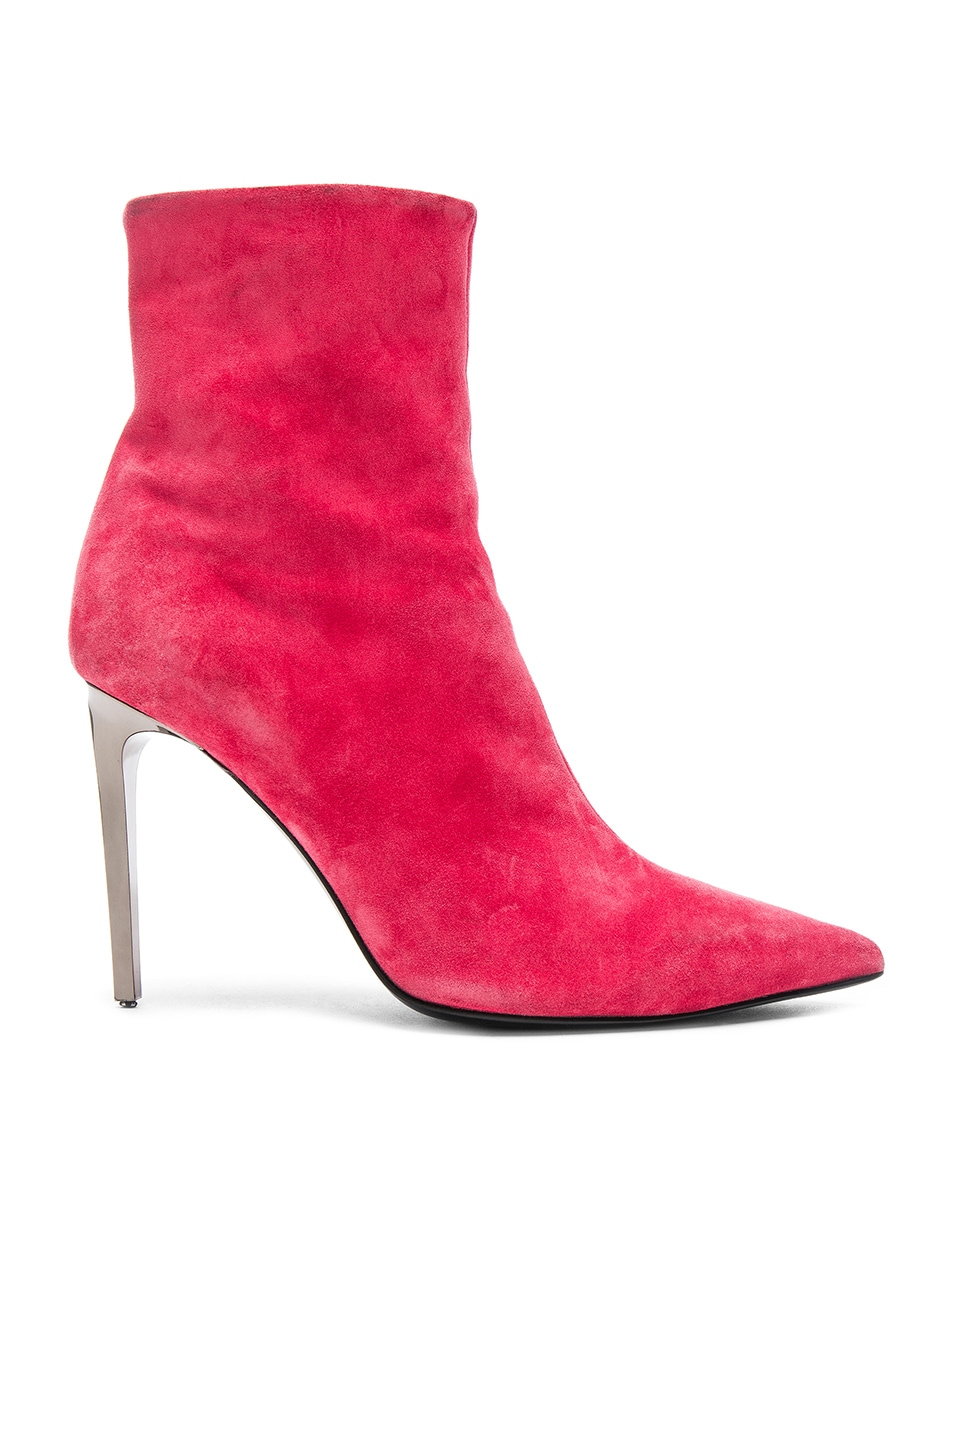 RAG&BONE Suede Wes Boots in Berry Online Cheapest  Clearance Discount aww3SEIxE